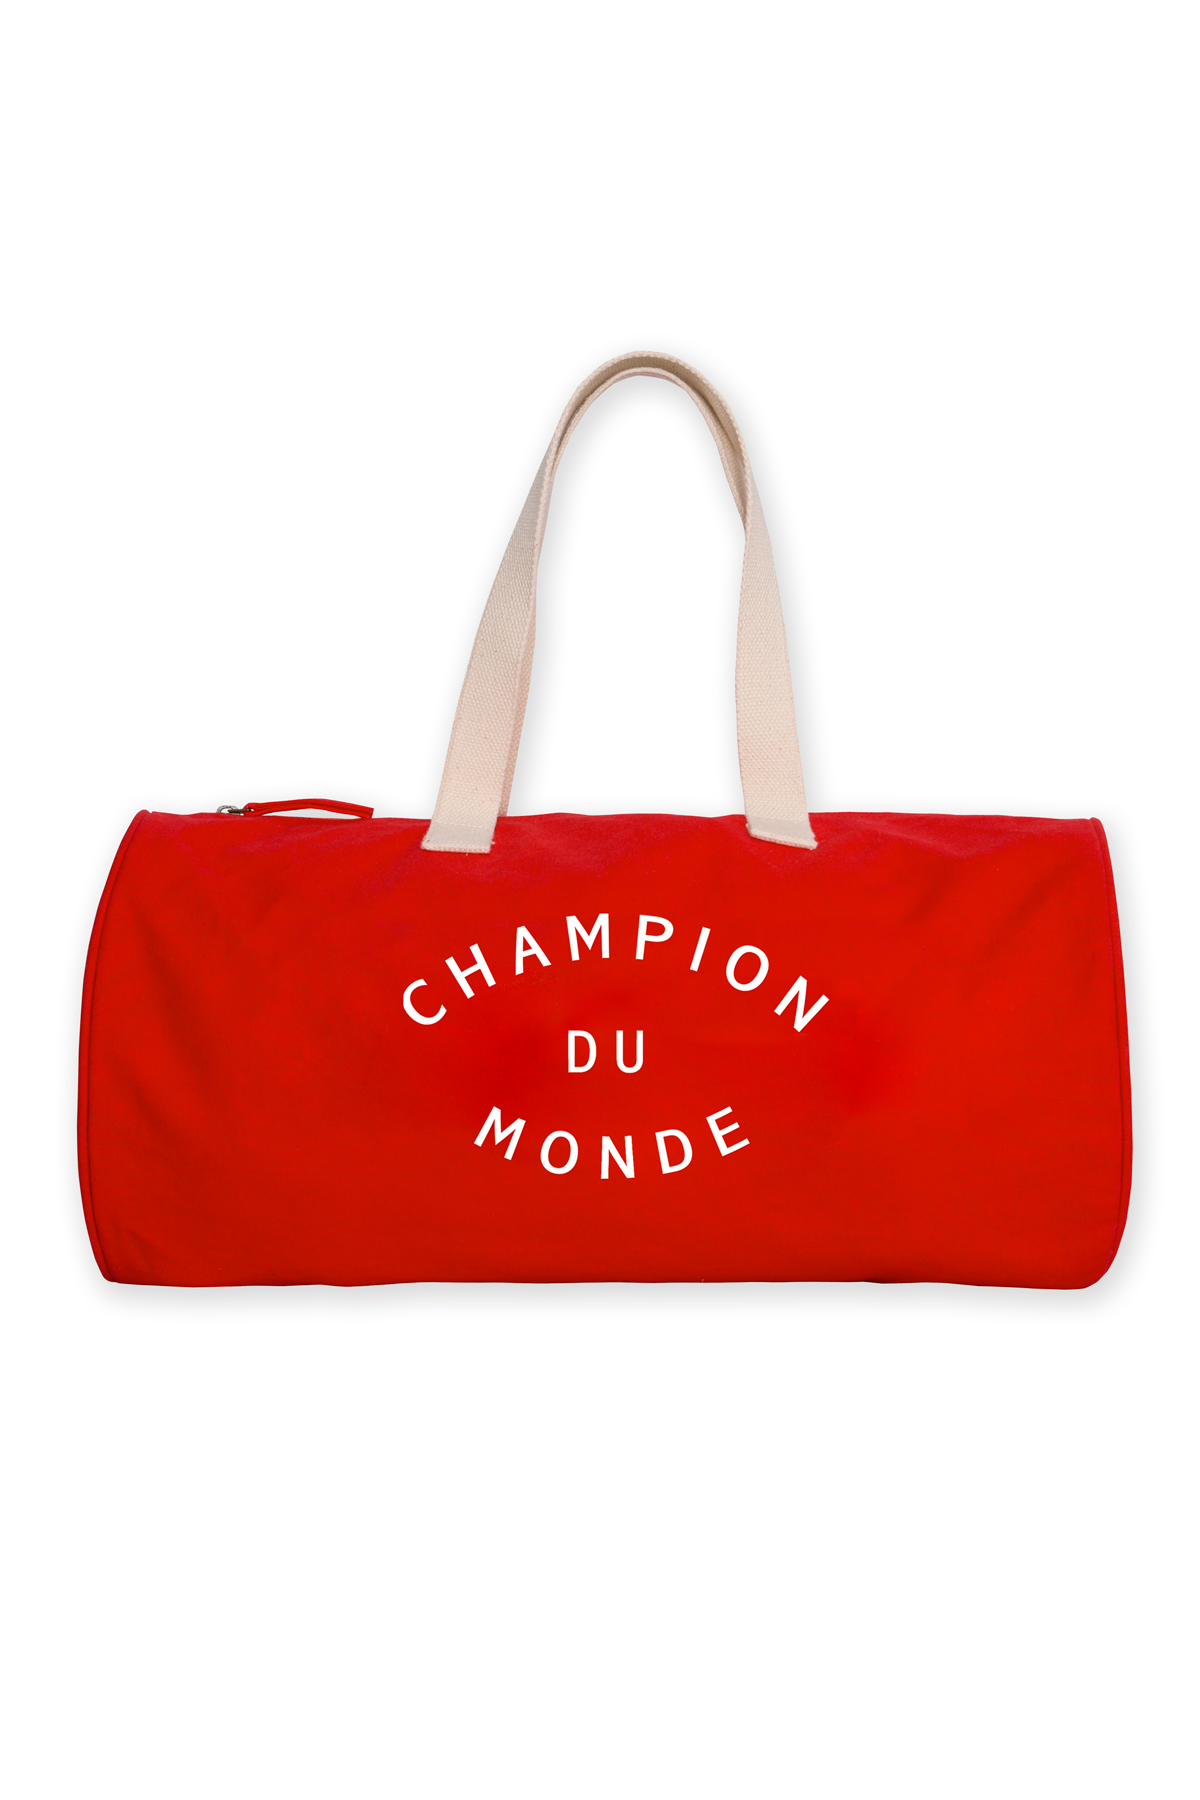 Duffle Bag CHAMPION DU MONDE